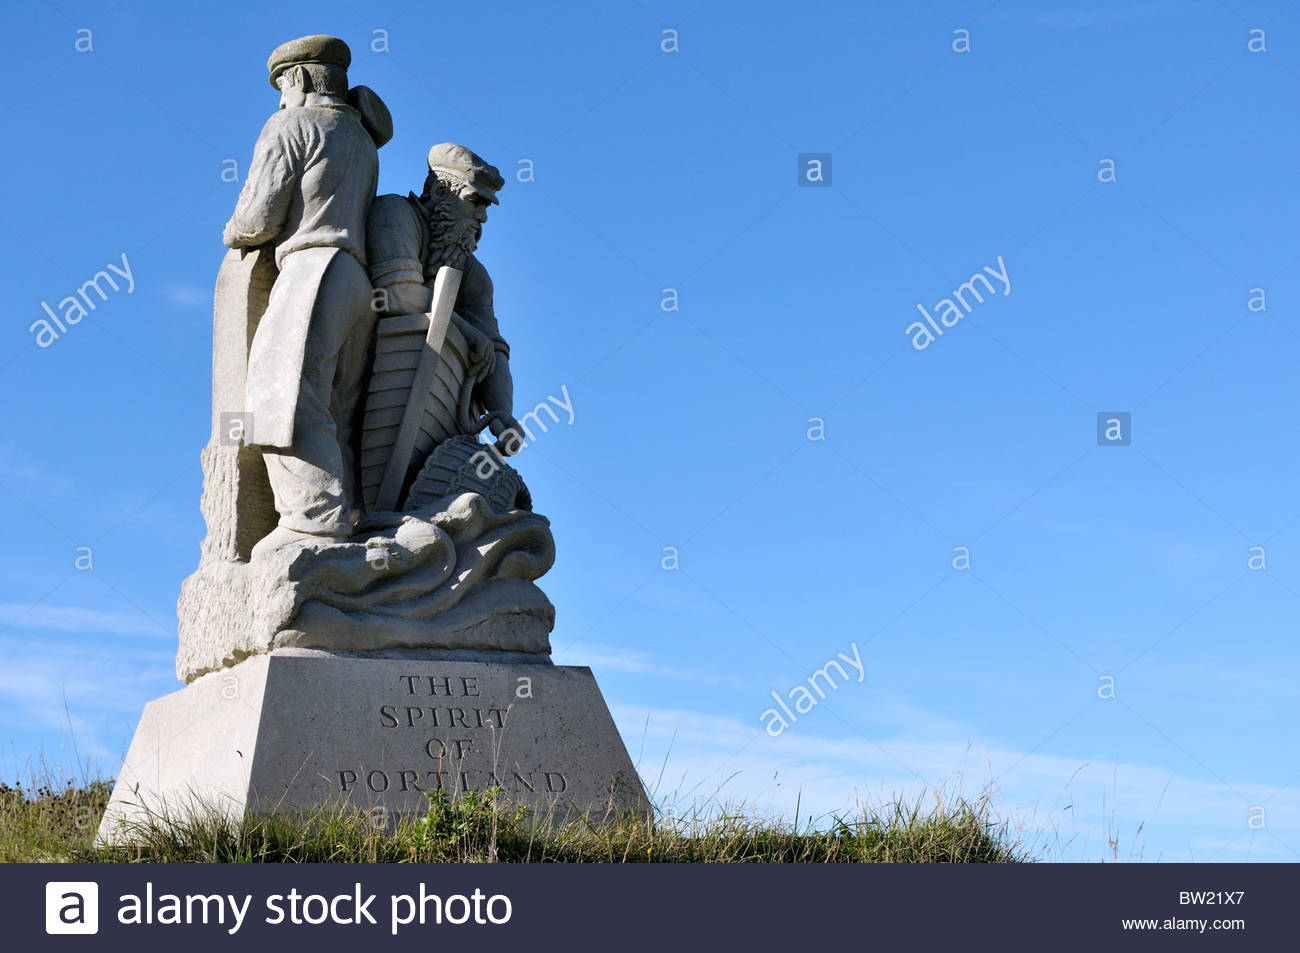 Looking up at the Spirit of Portland statue set against a clear blue sky on Isle of Portland in Dorset, England, - Stock Image